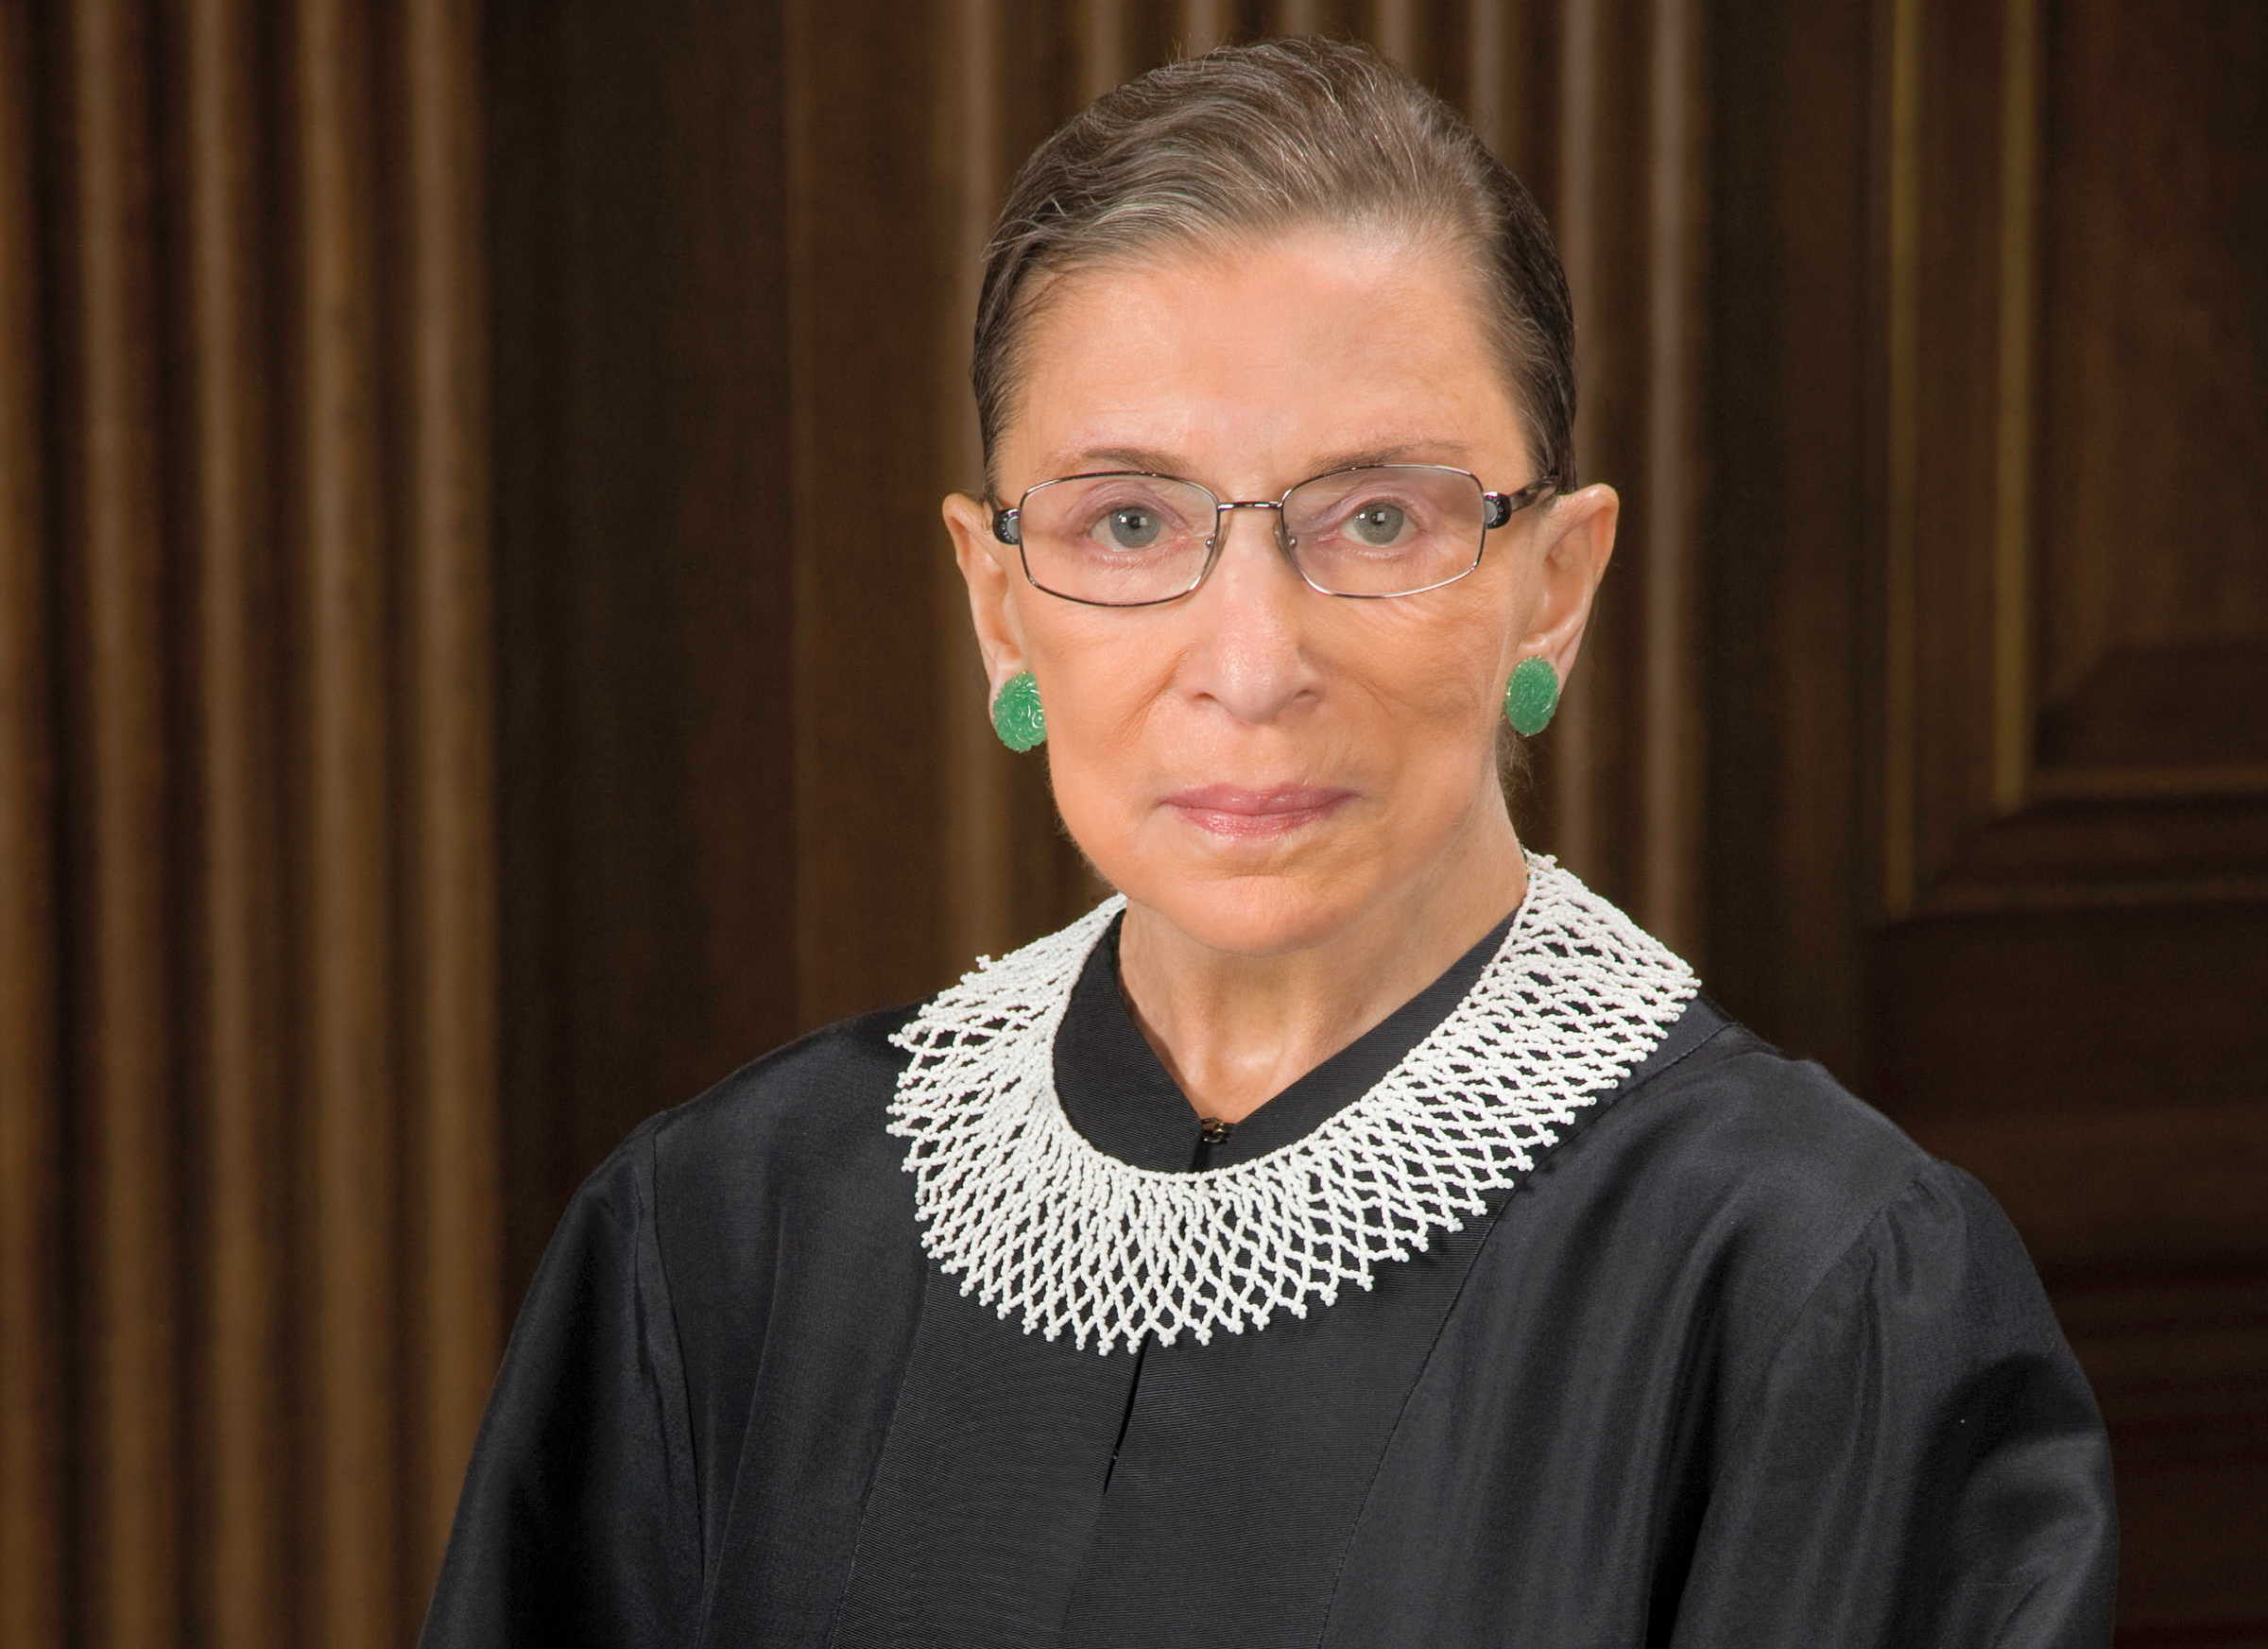 Read more about the article Justice Ruth Bader Ginsburg's Disability Rights' Legacy